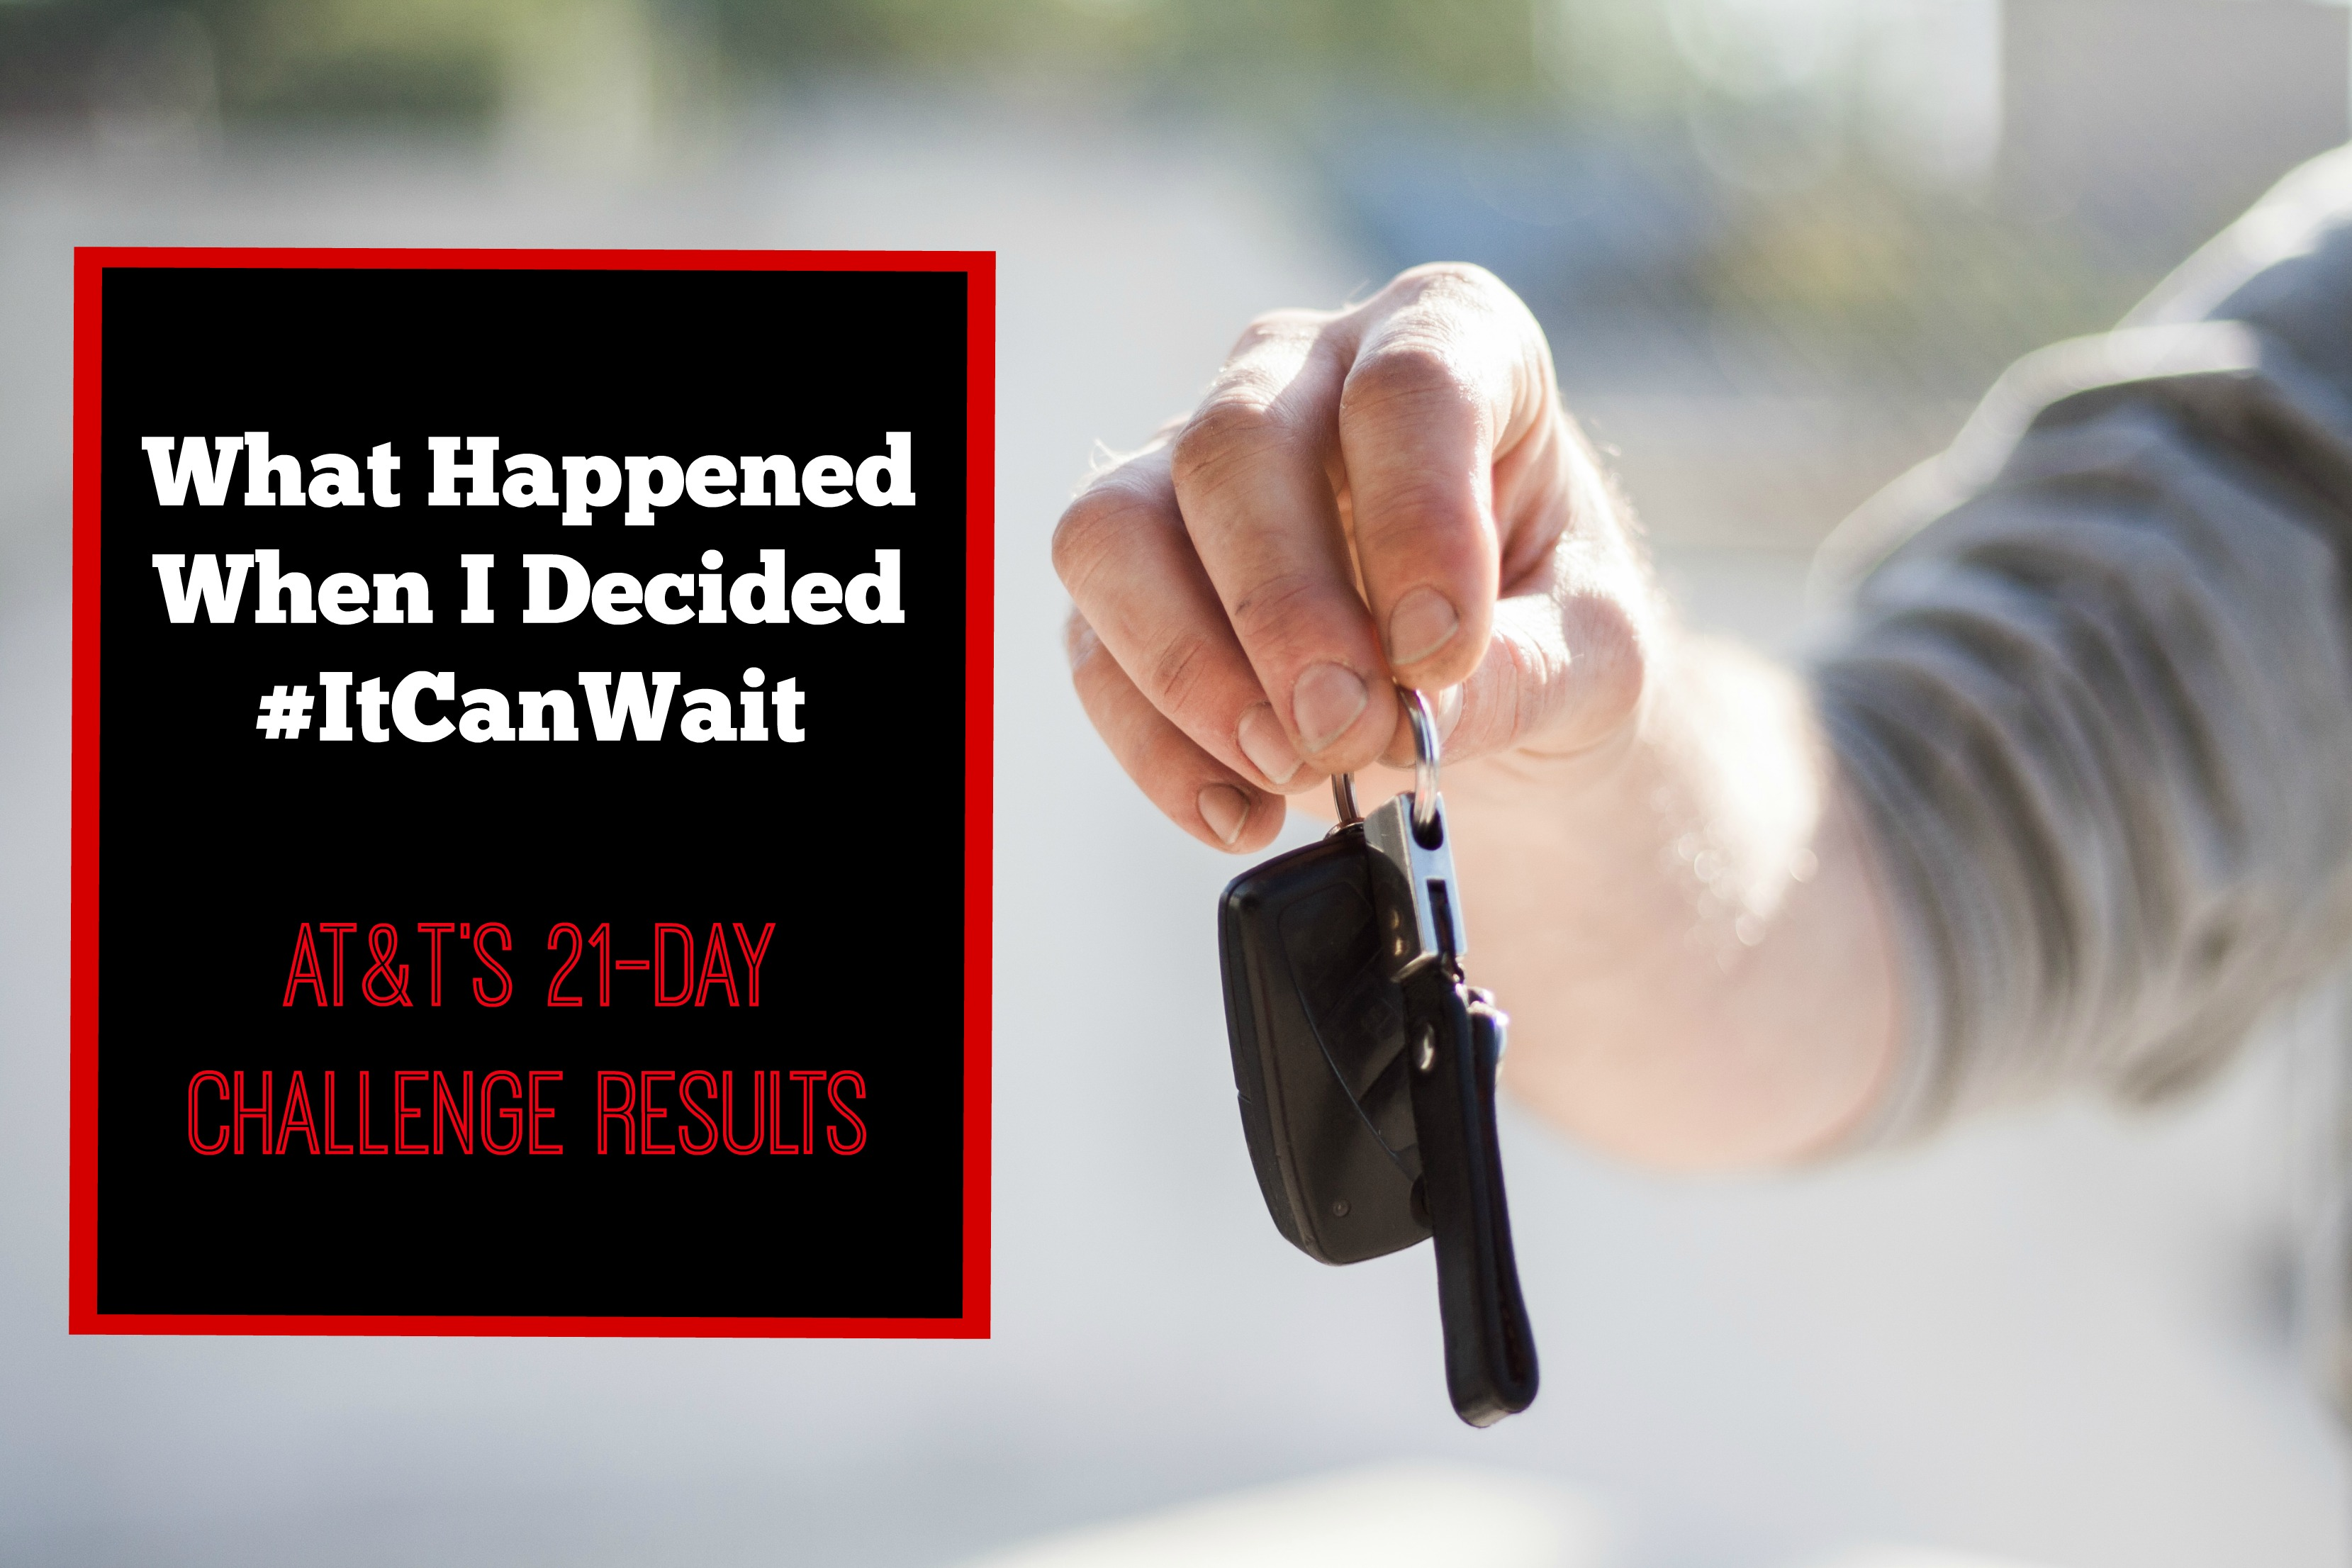 What Happened When I Decided #ItCanWait